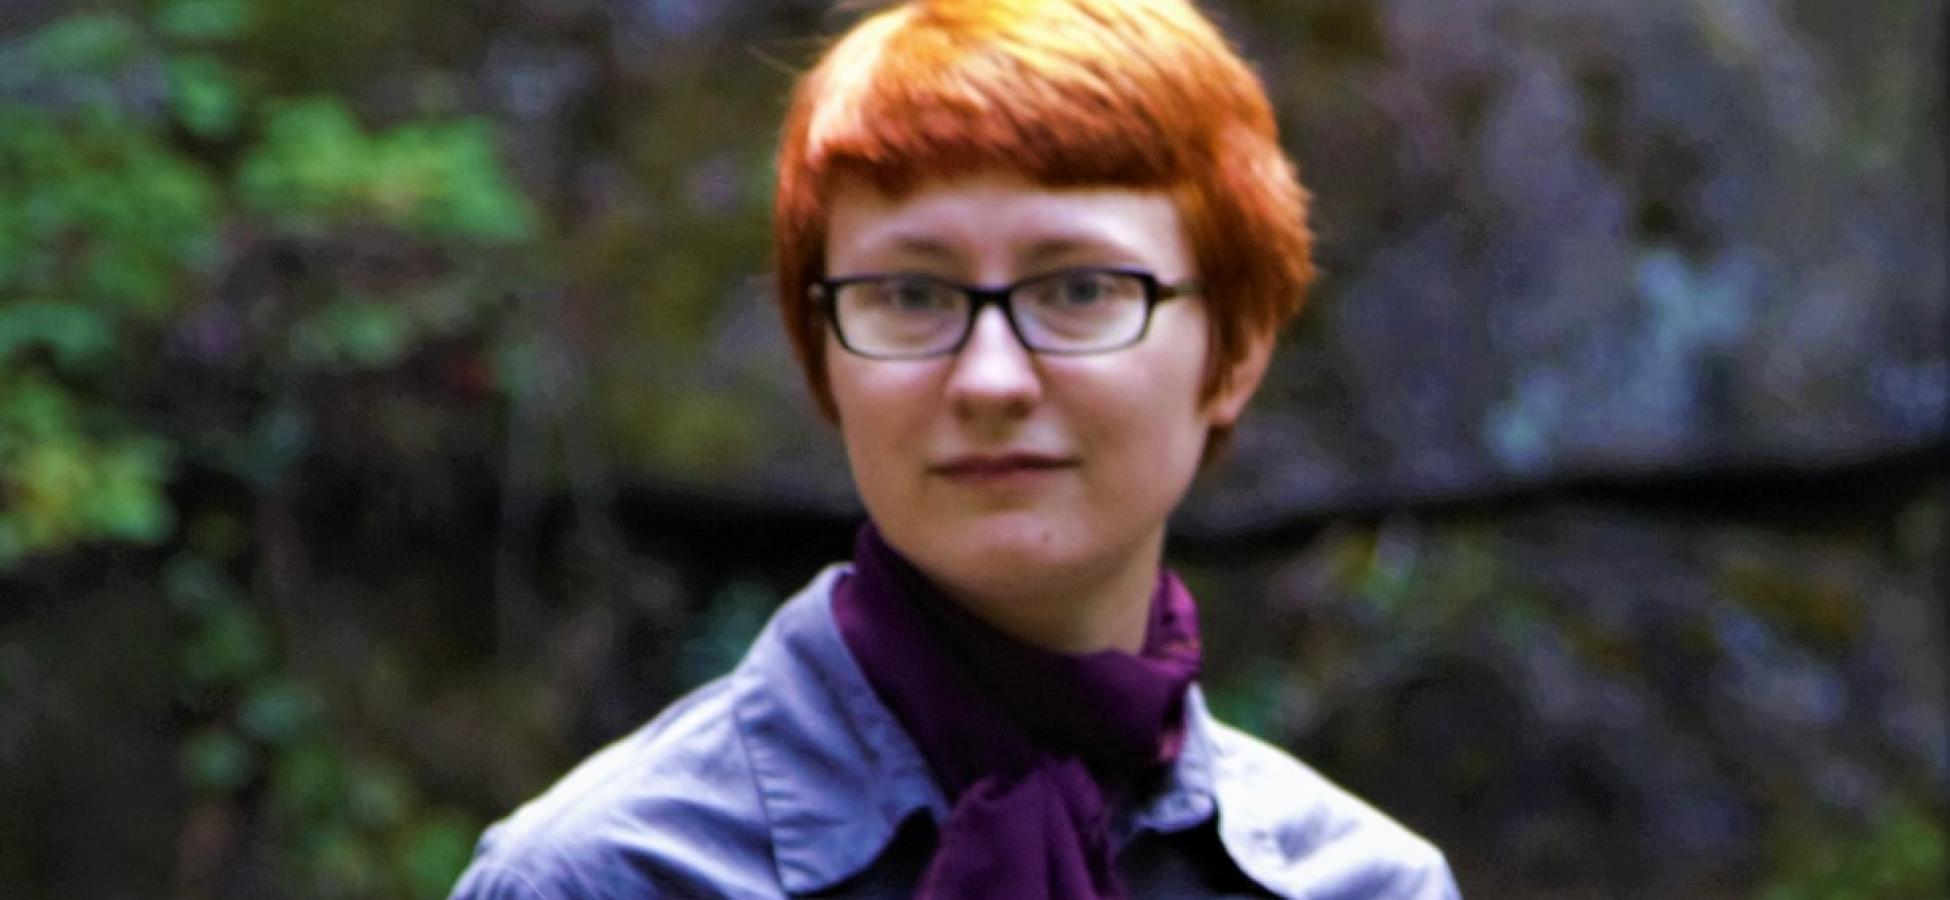 young person with short red hair and a dapper purple shirt and scarf